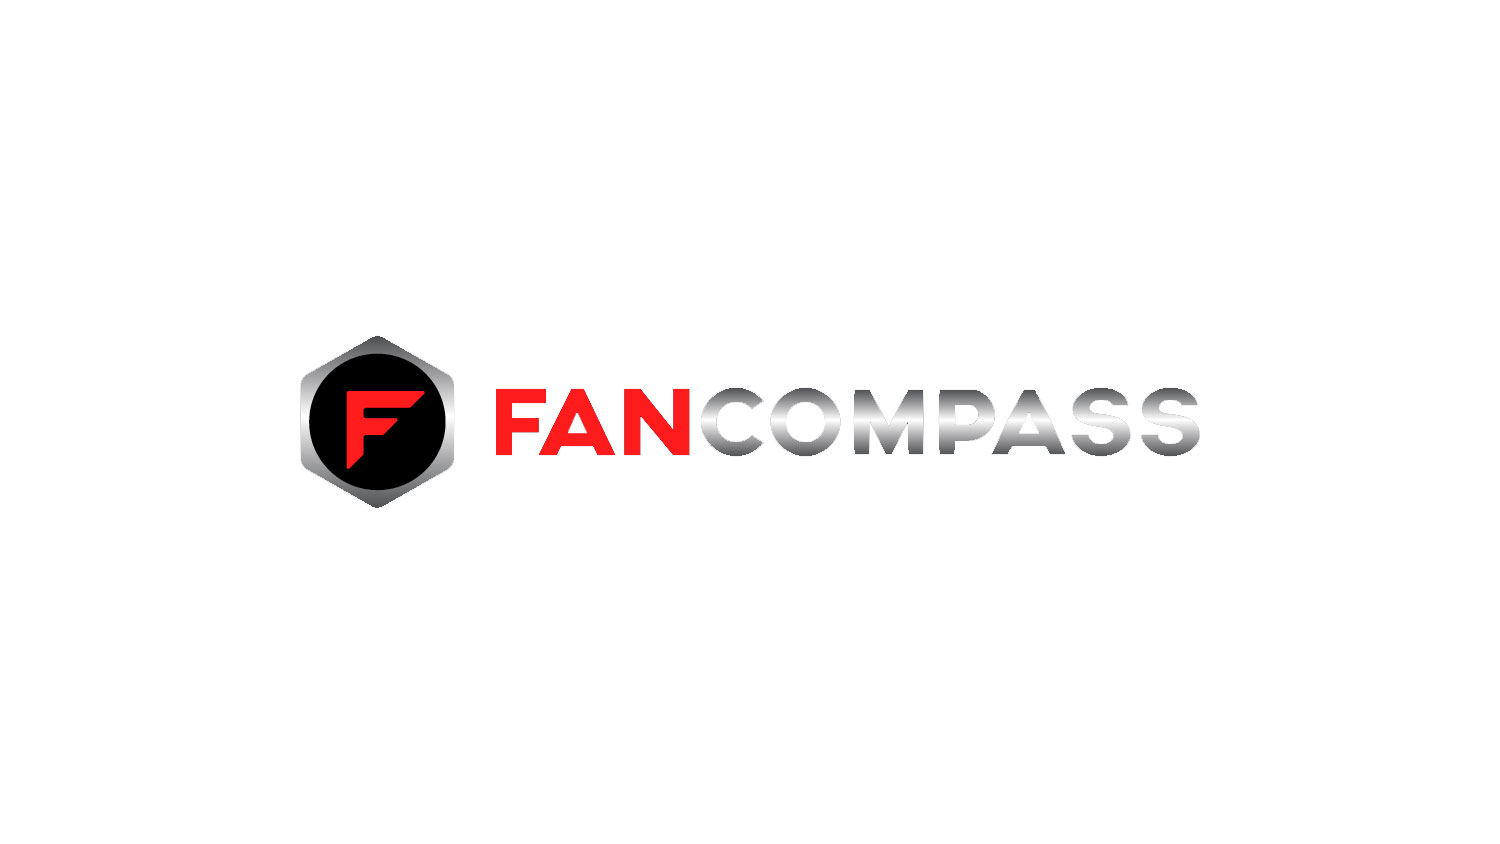 StellarAlgo and FanCompass Partner to Integrate 1st Party Digital Data as Fans Move Online